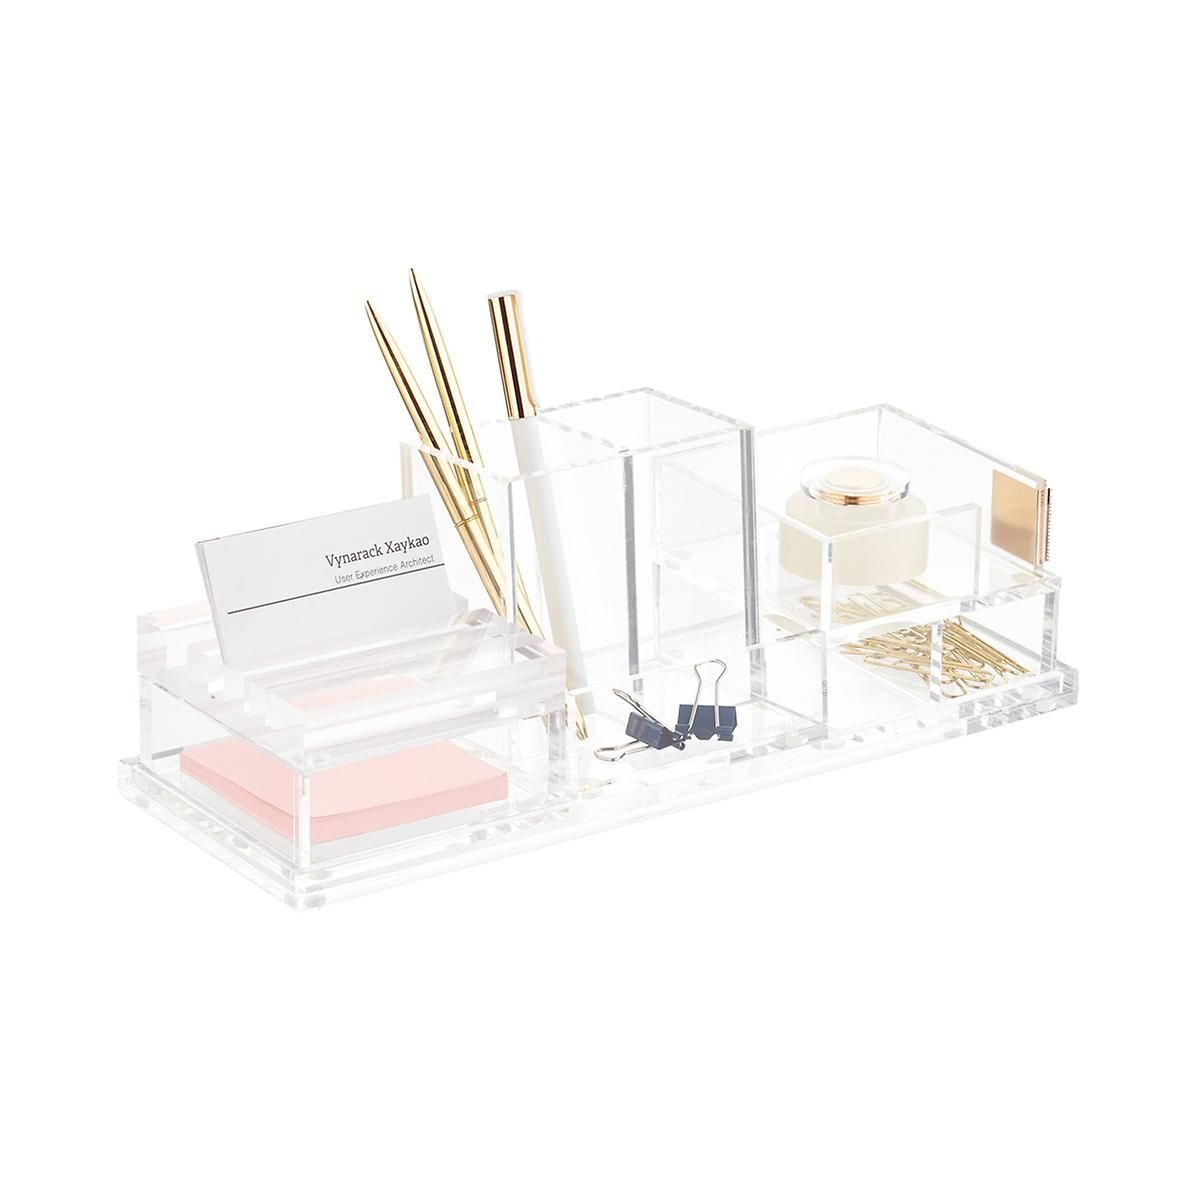 Acrylic Office Accessories Clear Home Office Accessories